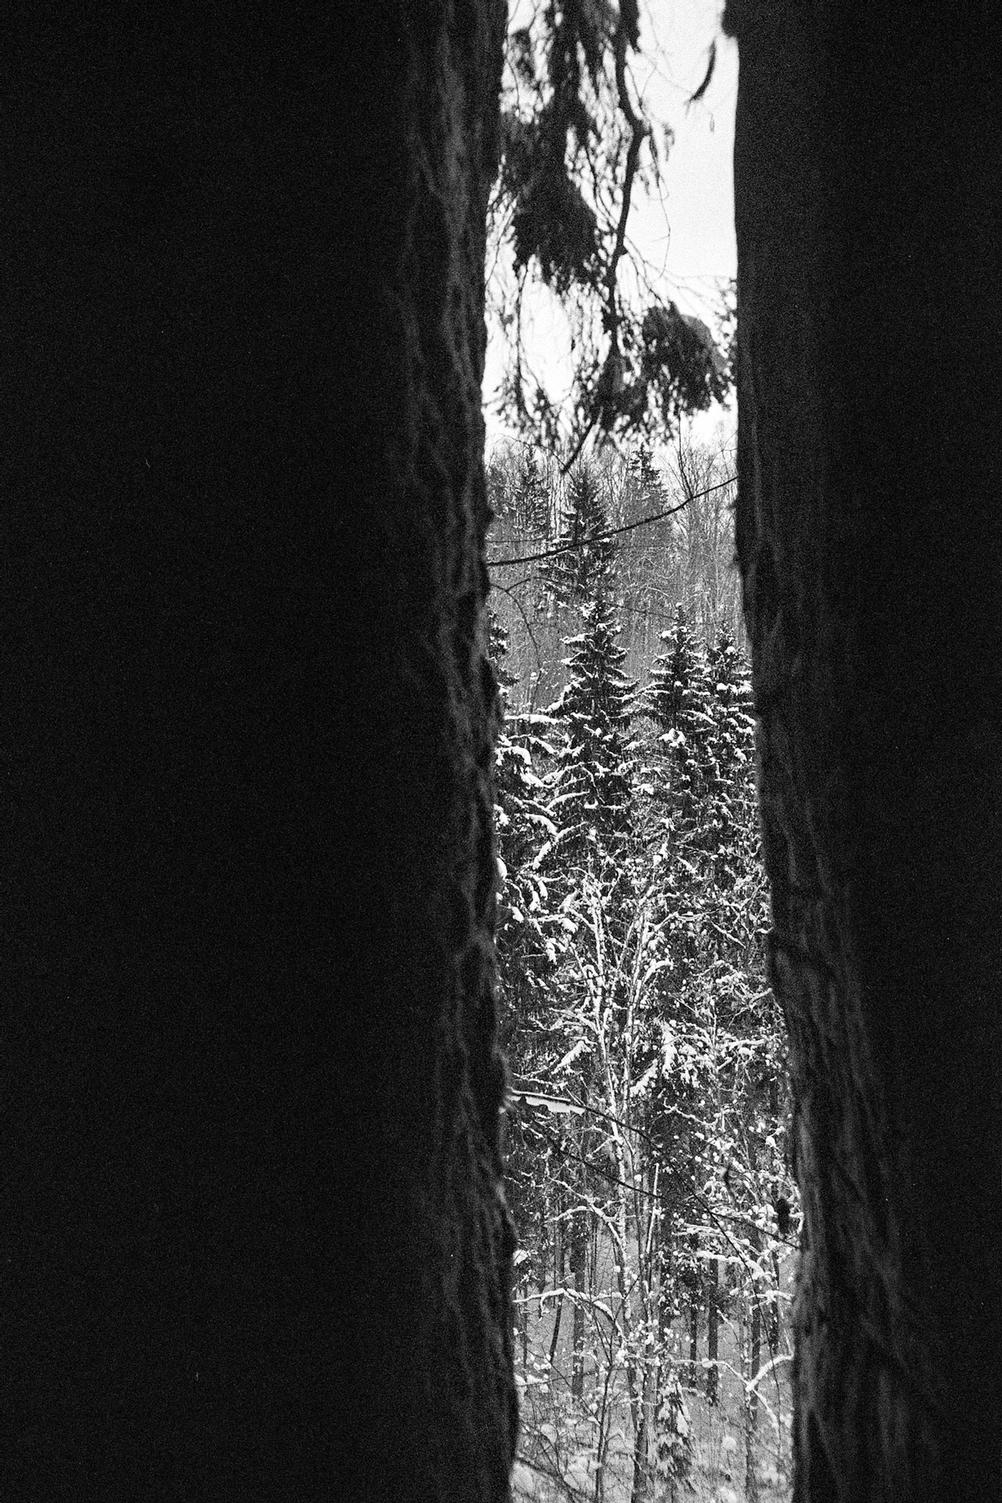 Photo of trees as shot through a cave.